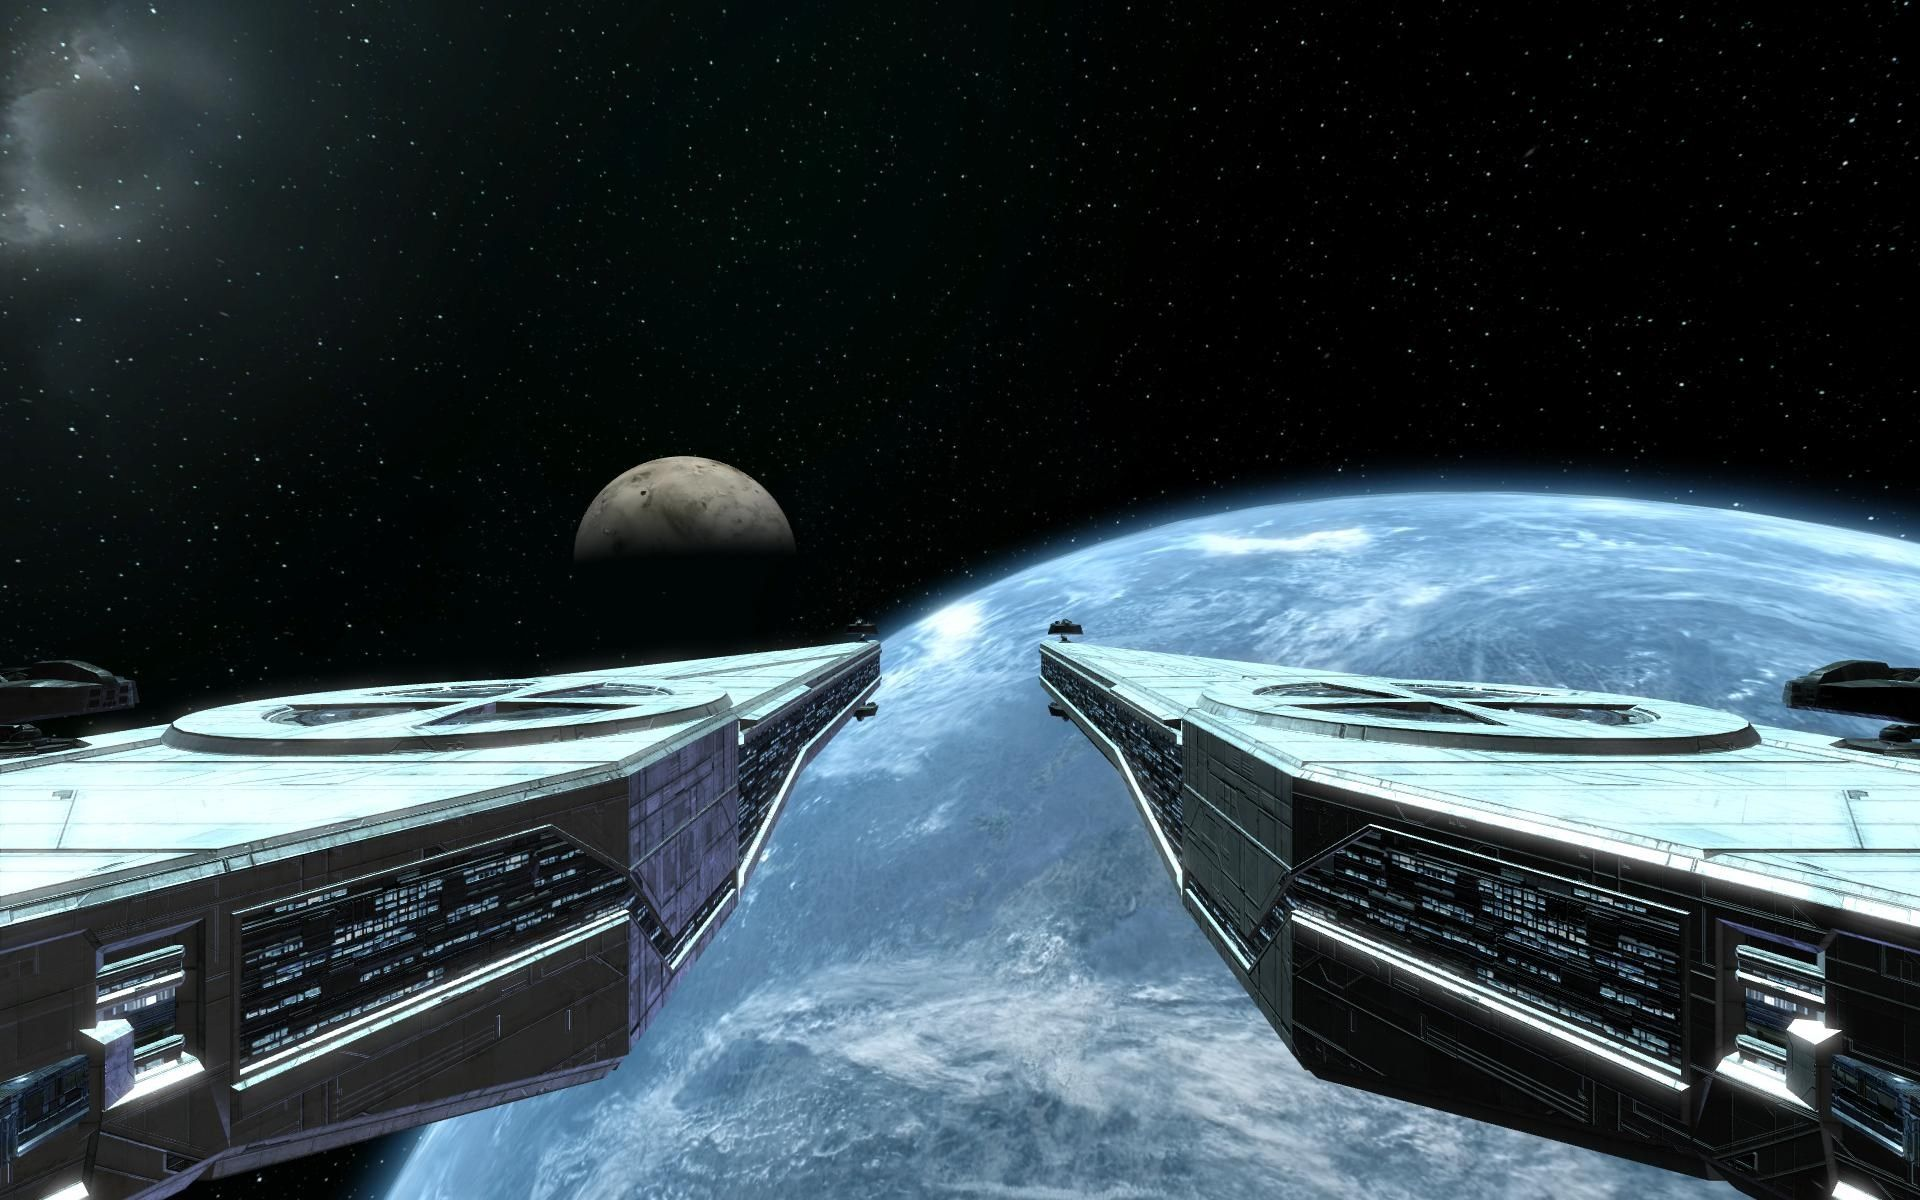 Backgrounds In High Quality - spaceship backround - spaceship category